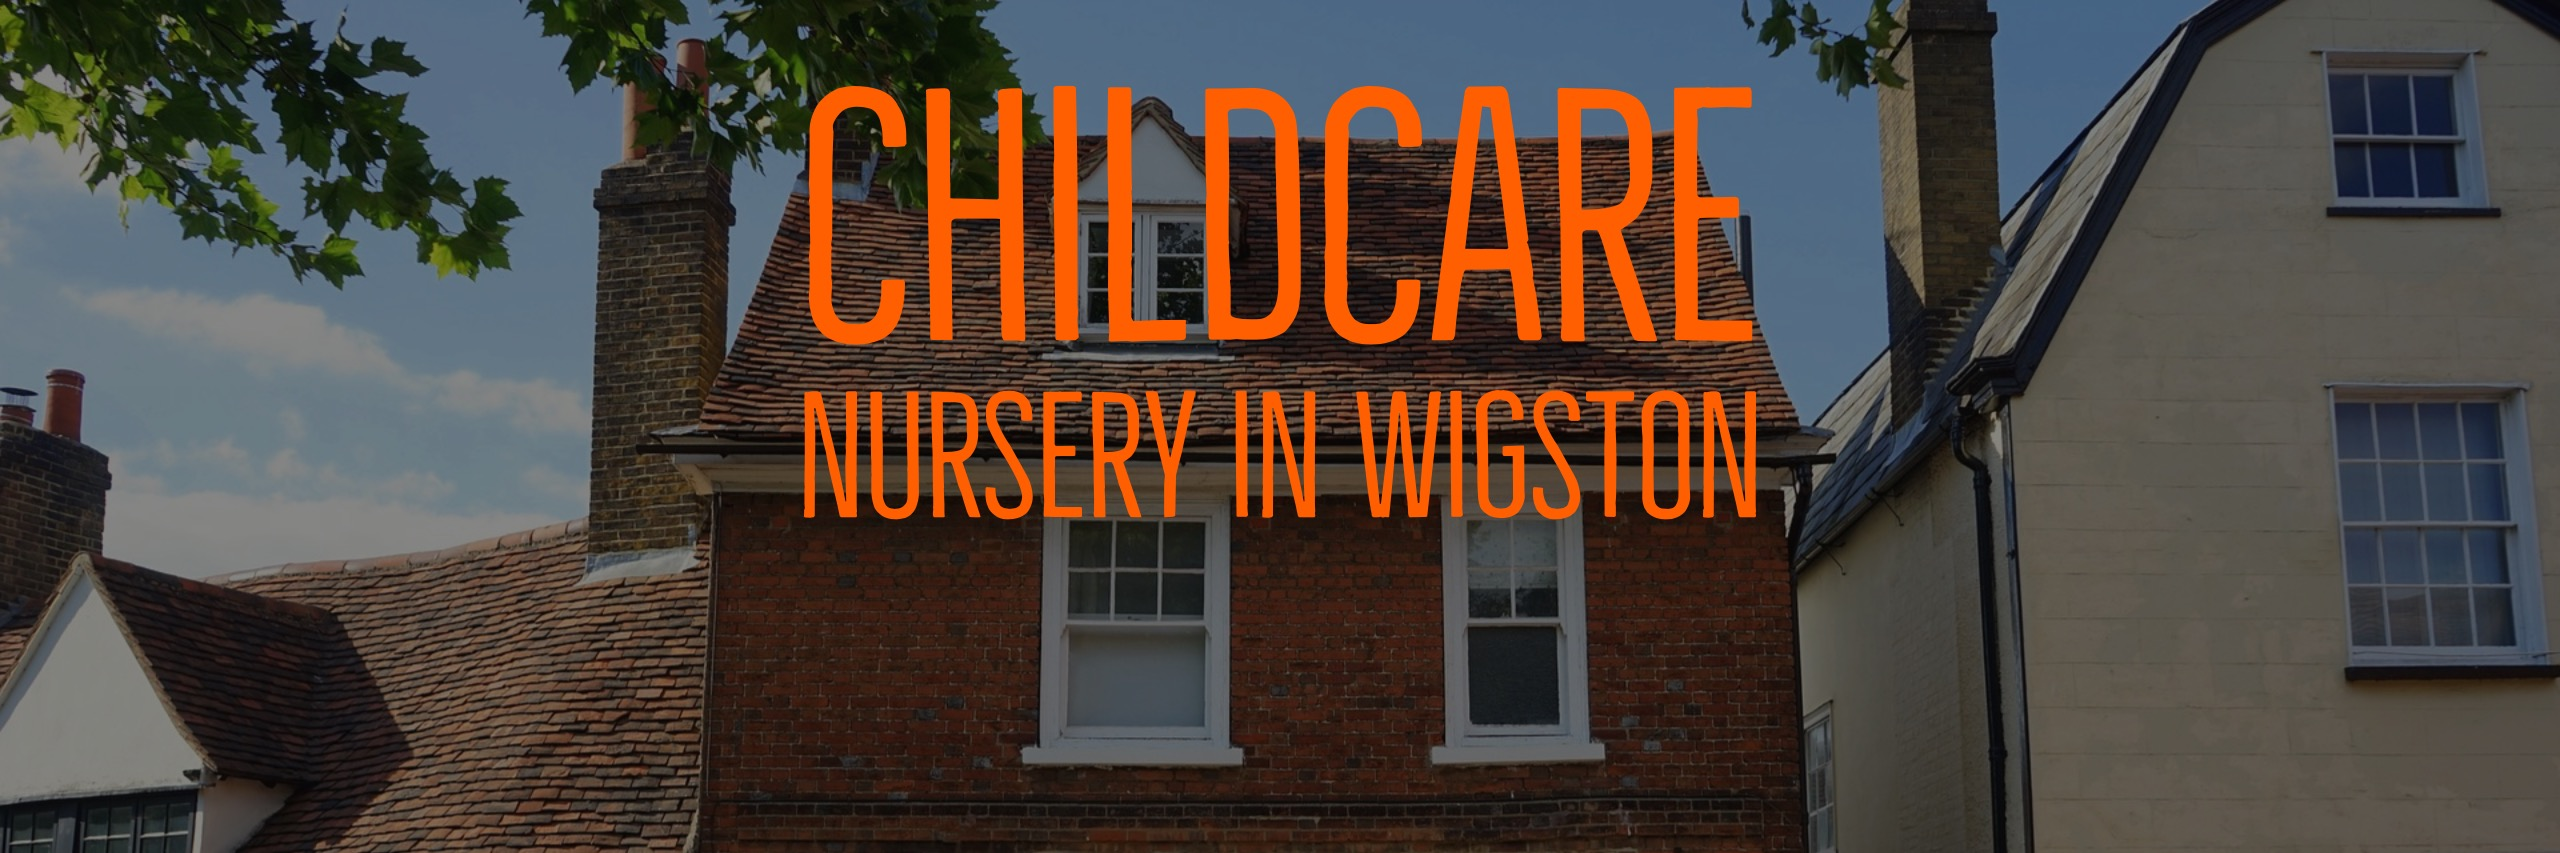 local day childcare nursery wigston Leicester